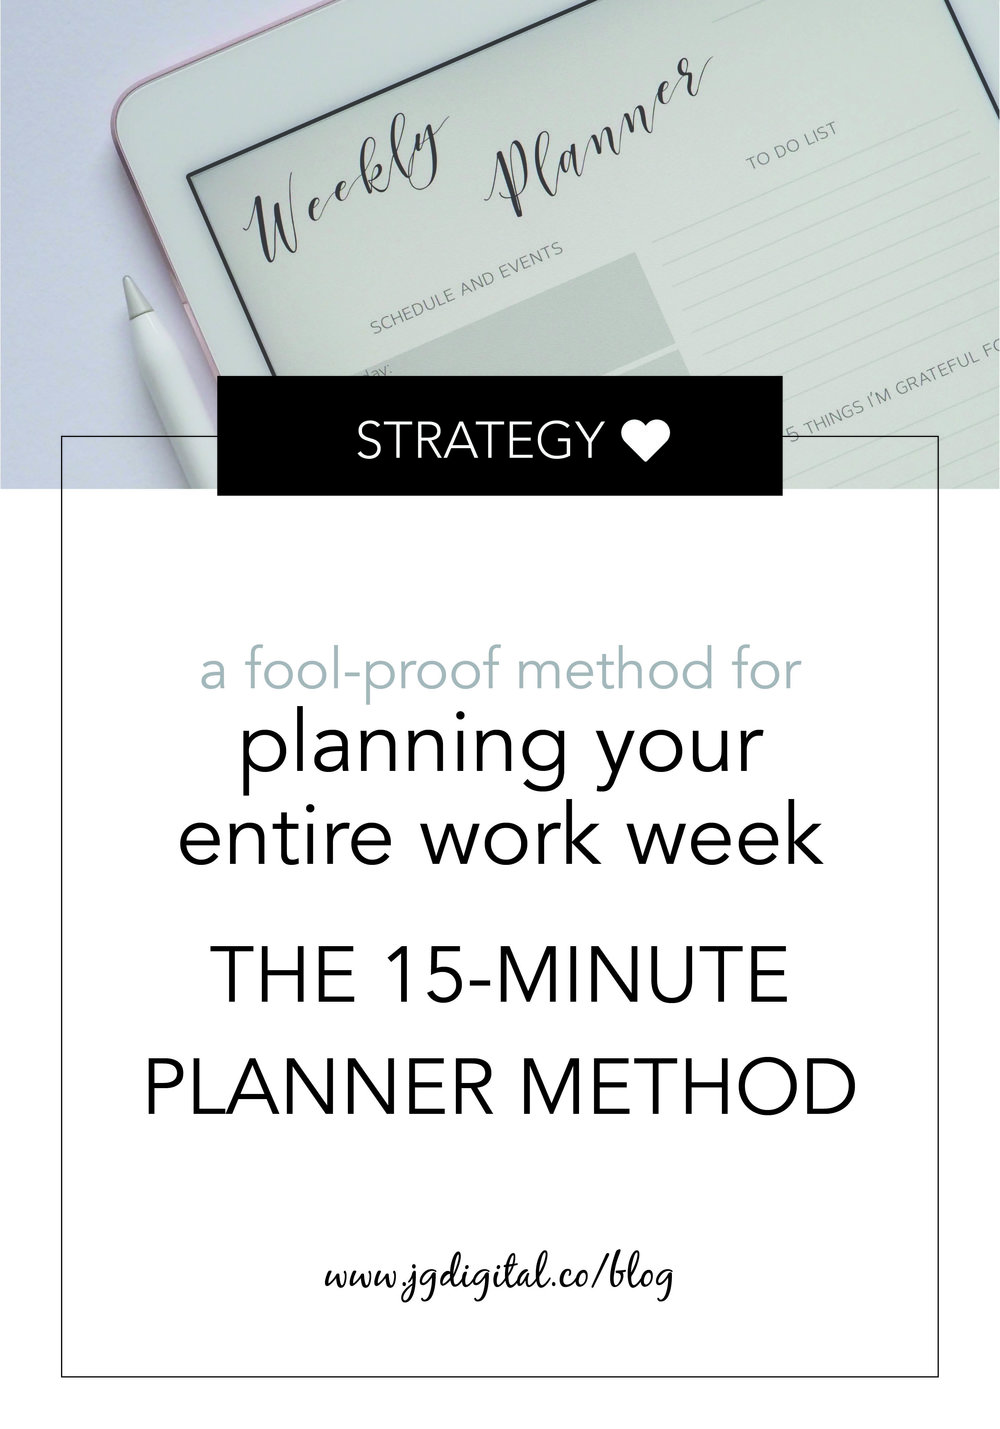 A Fool-Proof Method for Planning Your Entire Work Week in Just 15 Minutes by jgdigital.co